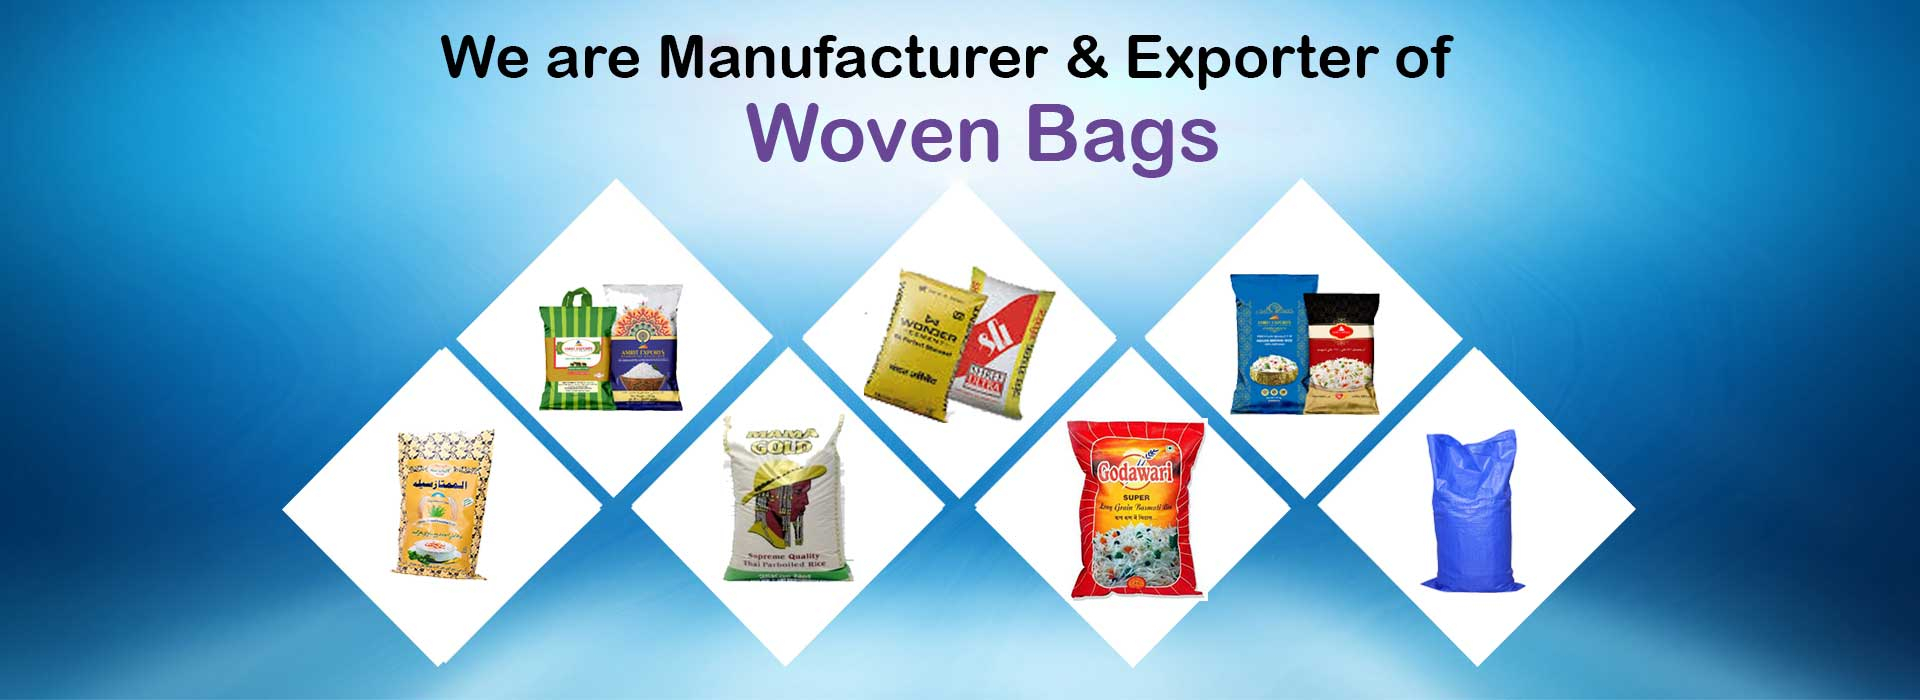 PP, HDPE Woven Bag Manufacturer in India